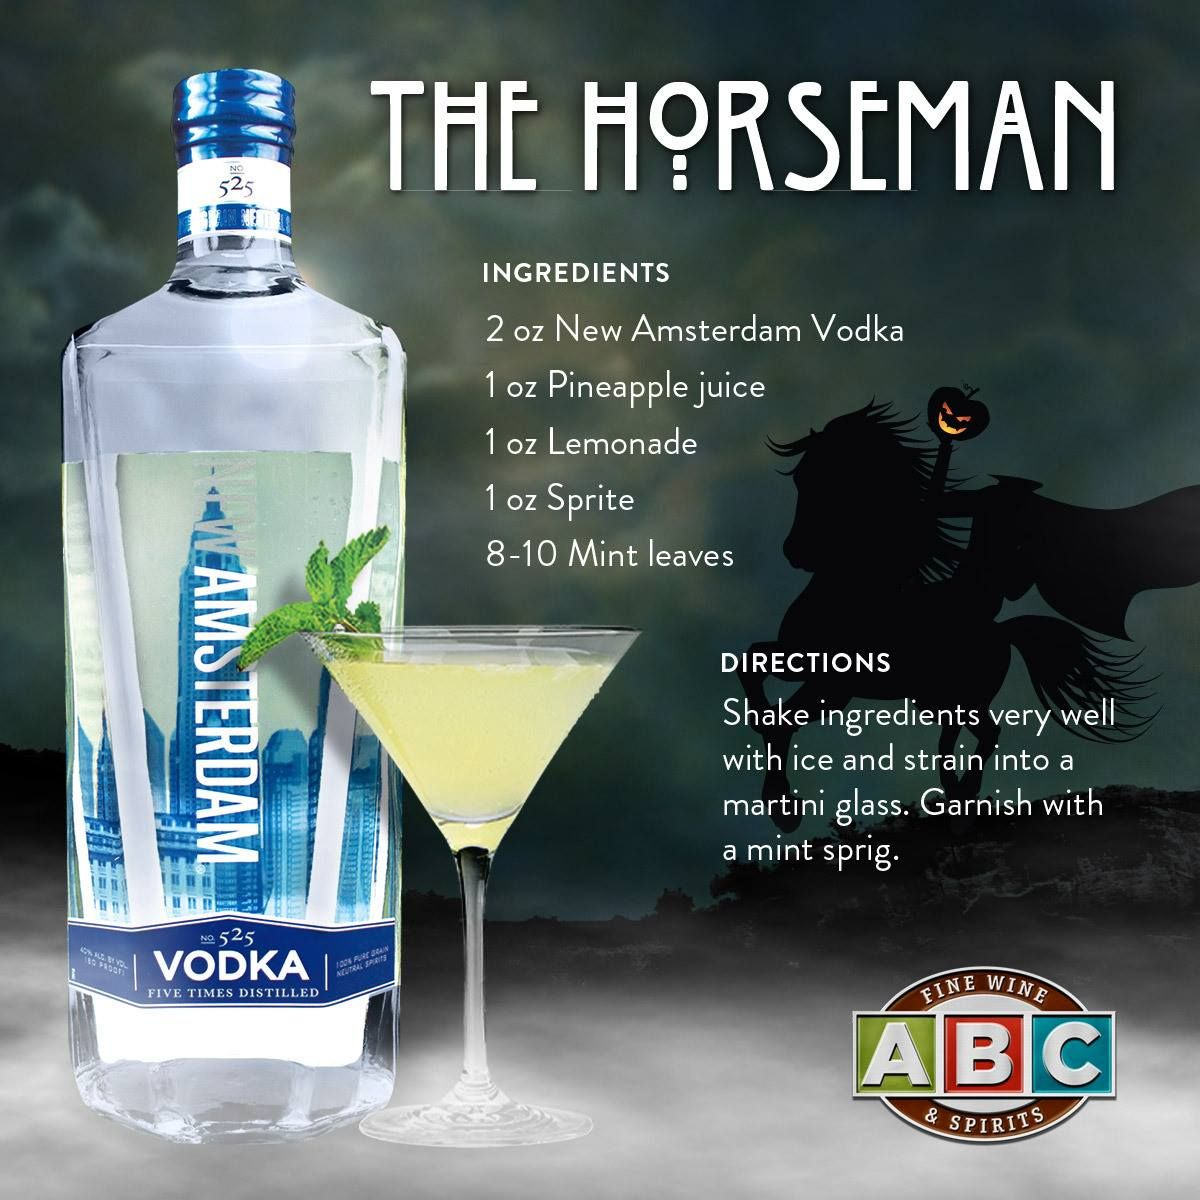 The Horseman Featuring New Amsterdam Vodka Halloween Drinks